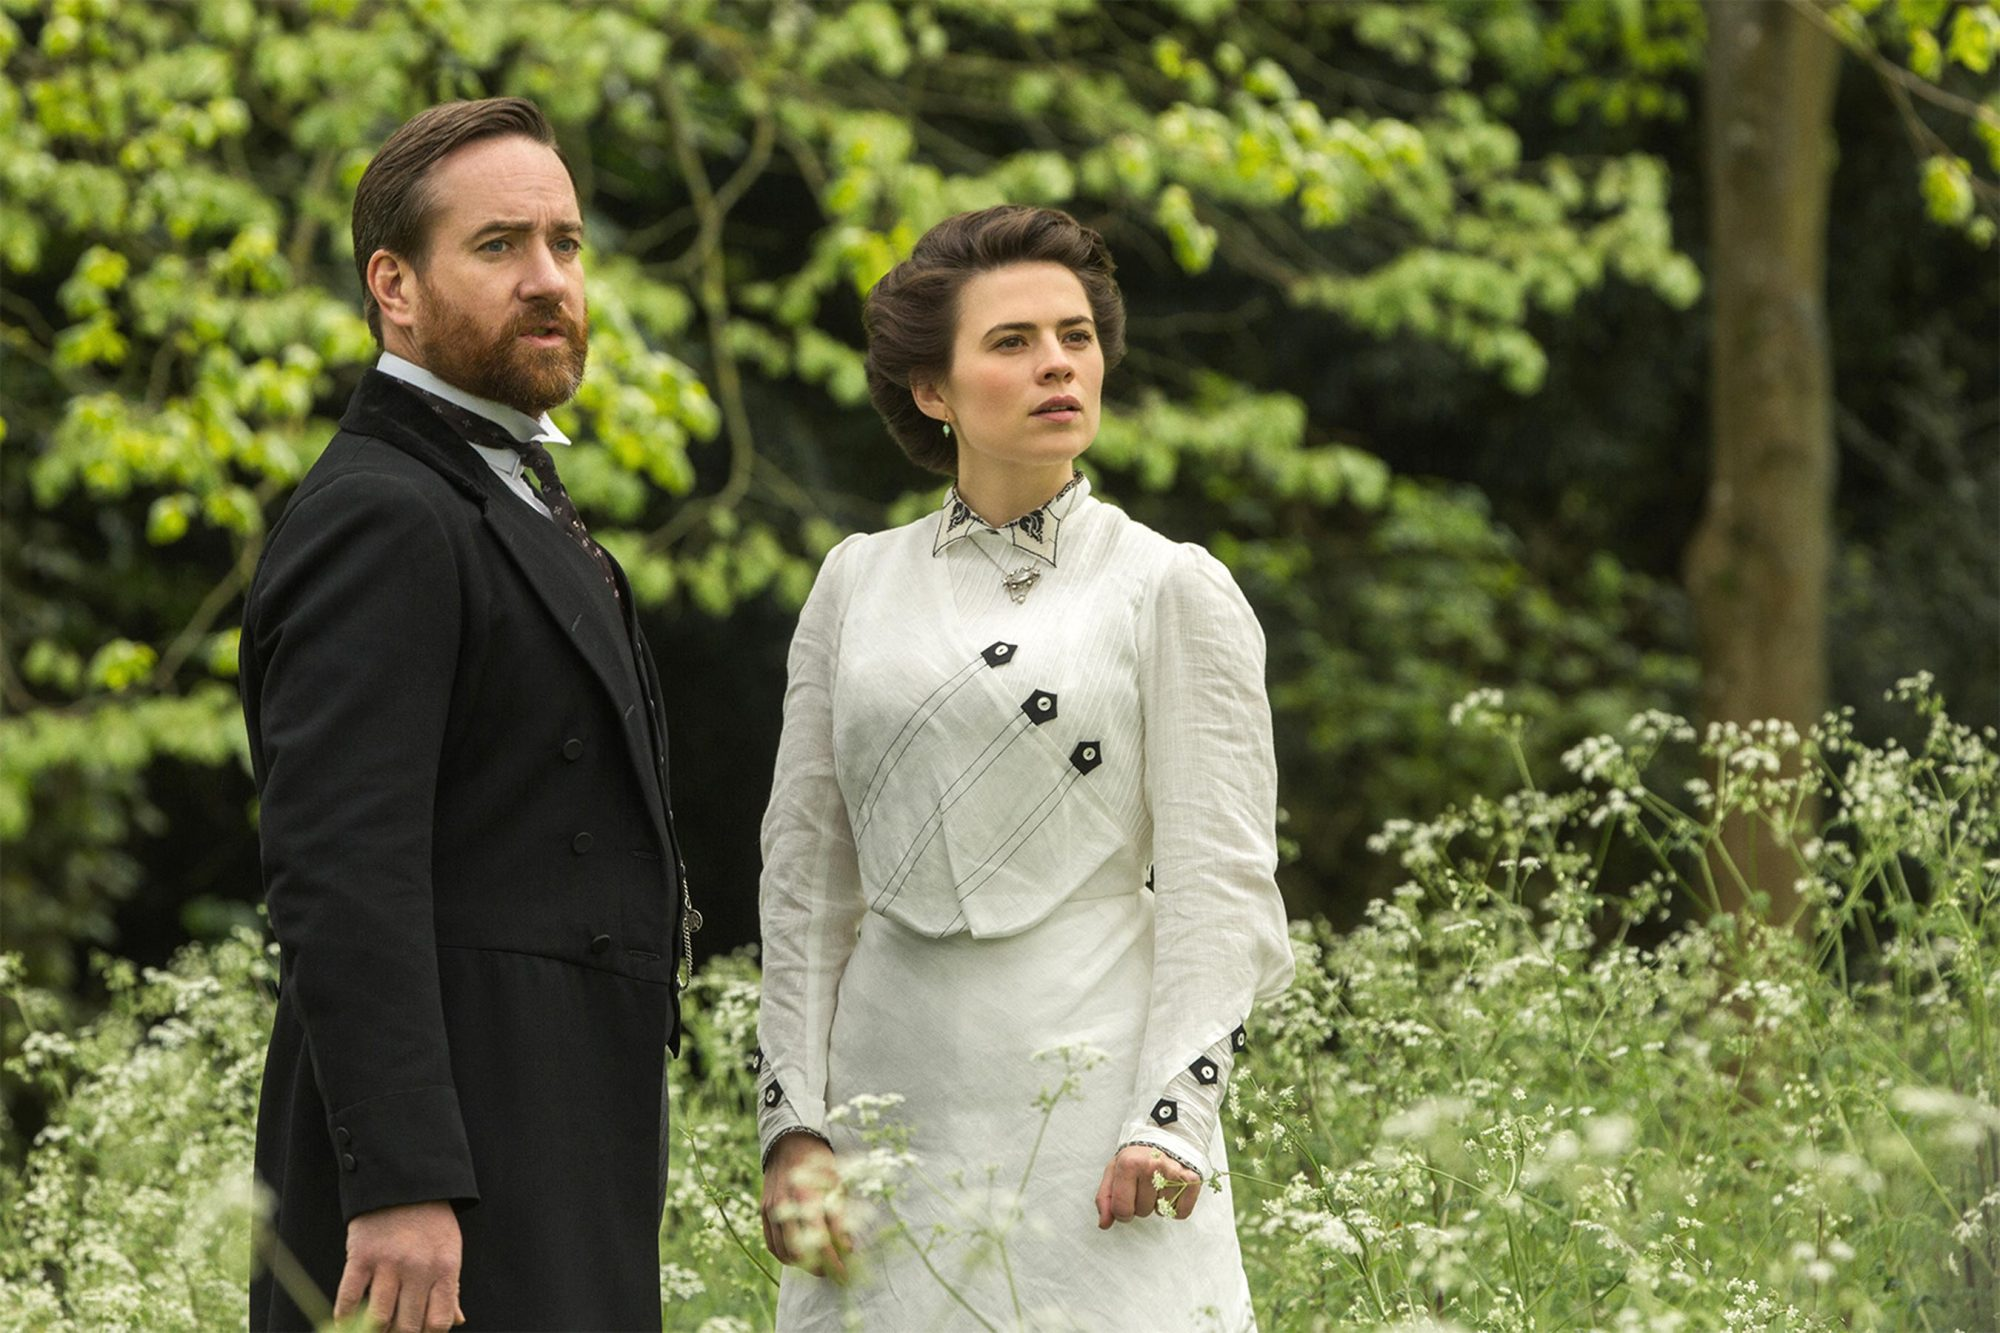 Kristen's No. 4: Howards End